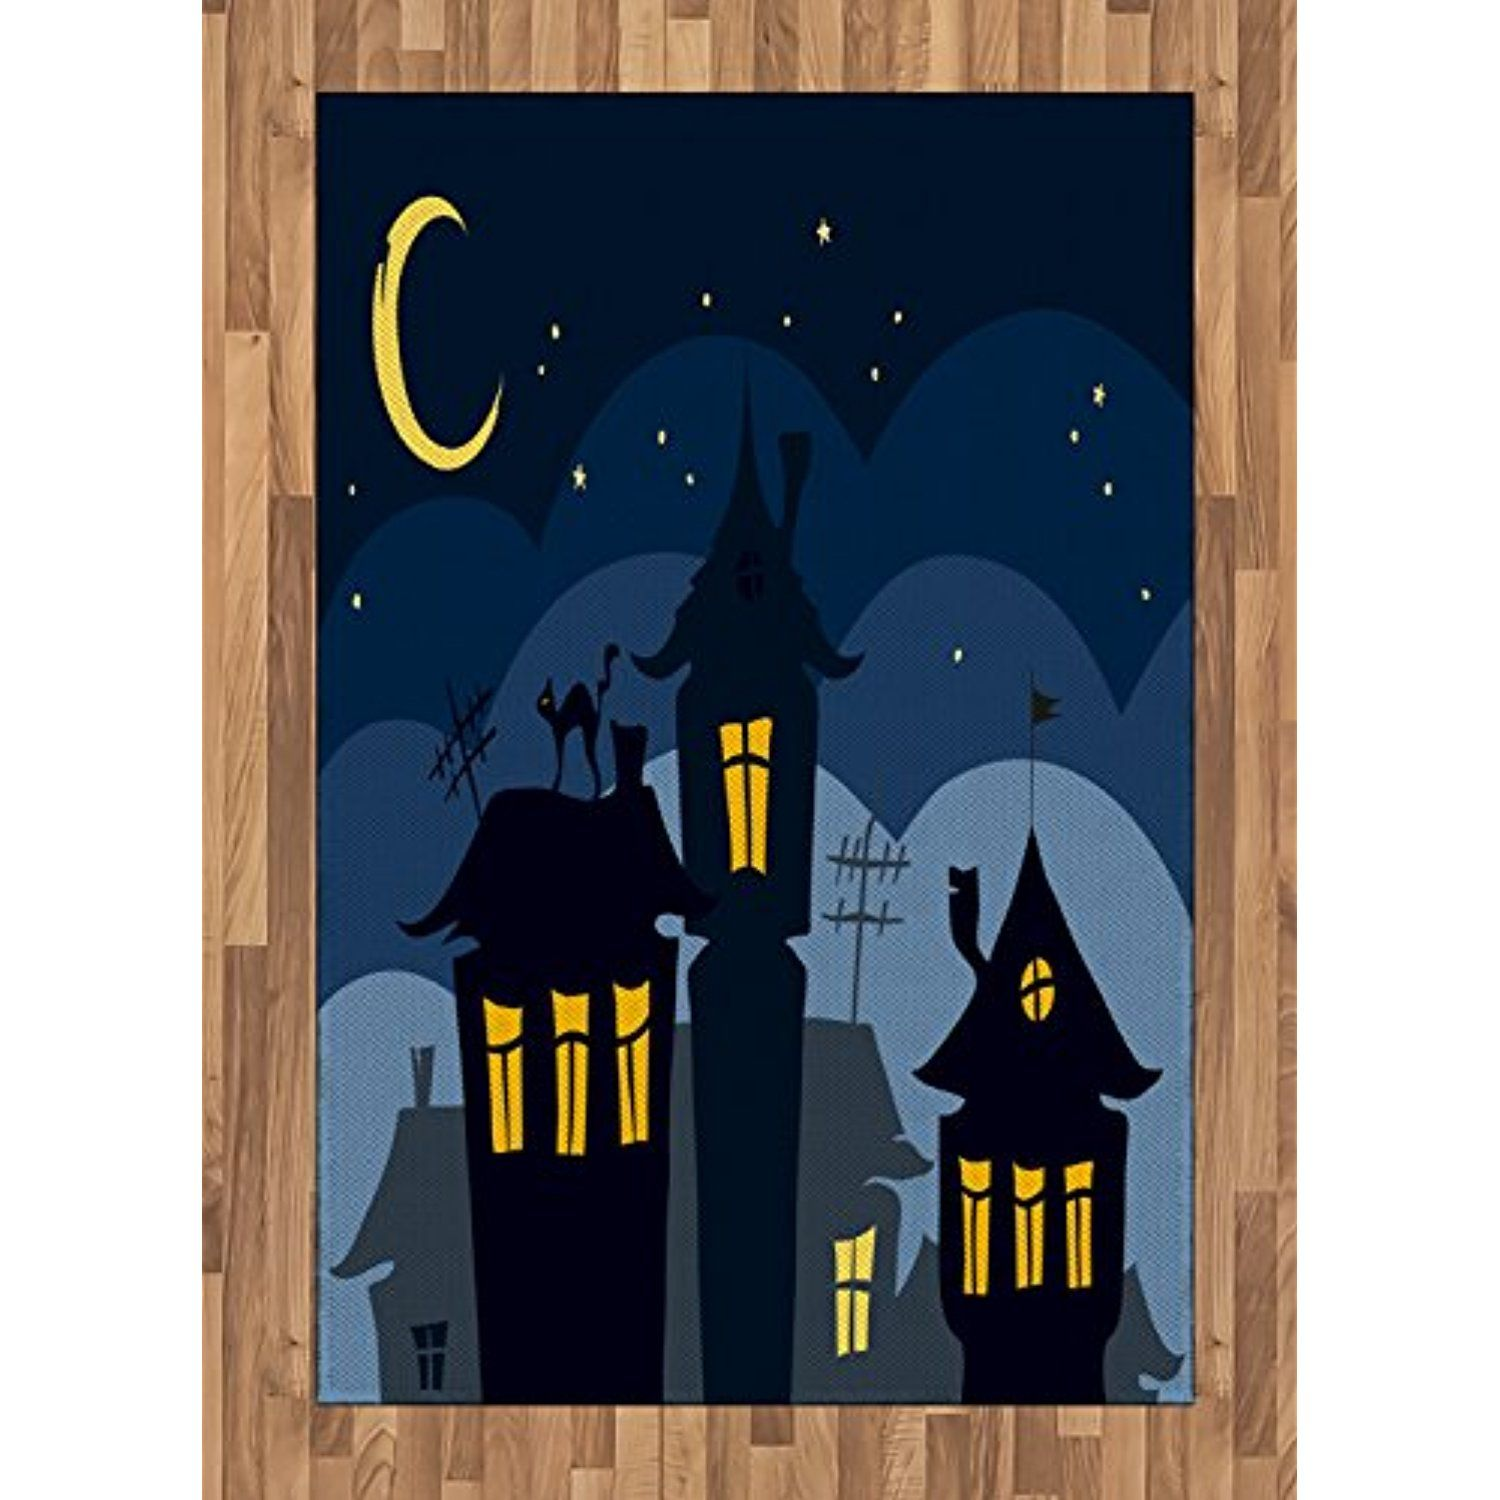 Halloween Area Rug By Ambesonne Old Town With Cat On The Roof Night Sky Moon And Stars Houses Cartoon Art Flat Wov Cartoon Art Night Sky Moon Wall Art Prints Black cat house roof stars silhouette